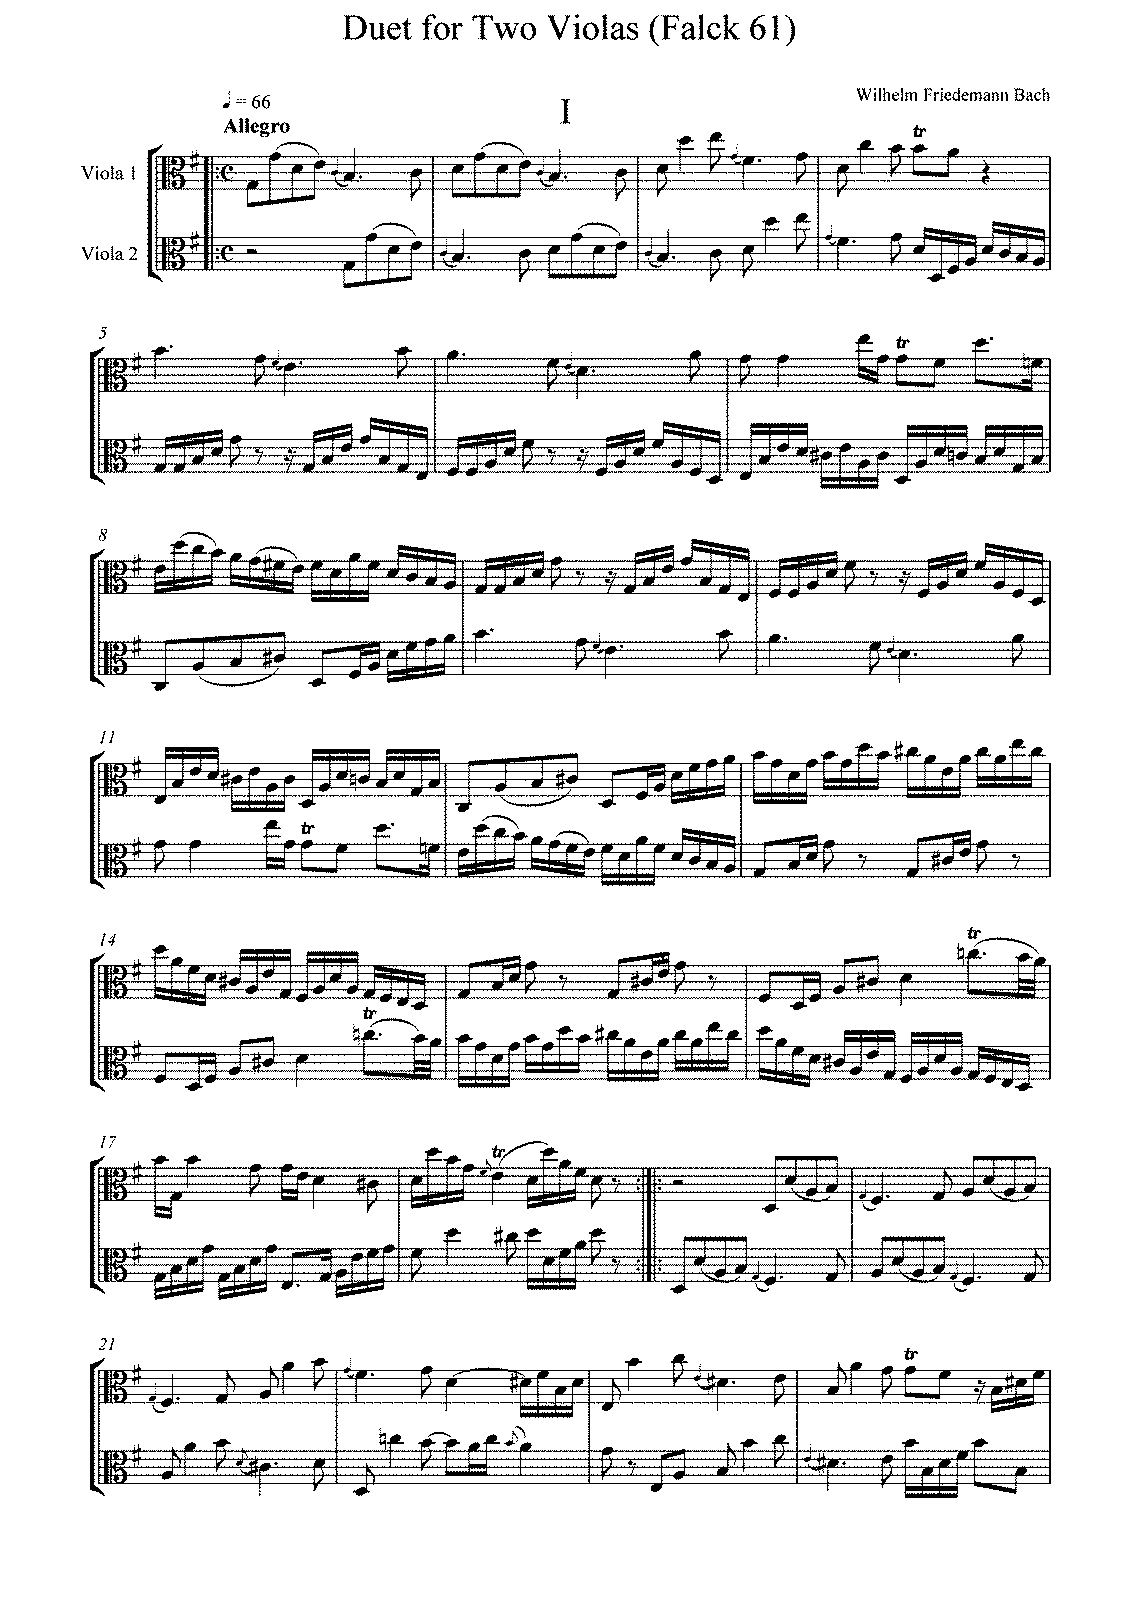 WIMA.727f-WFBach-Duo-for-Violas-Falck61-Score.pdf